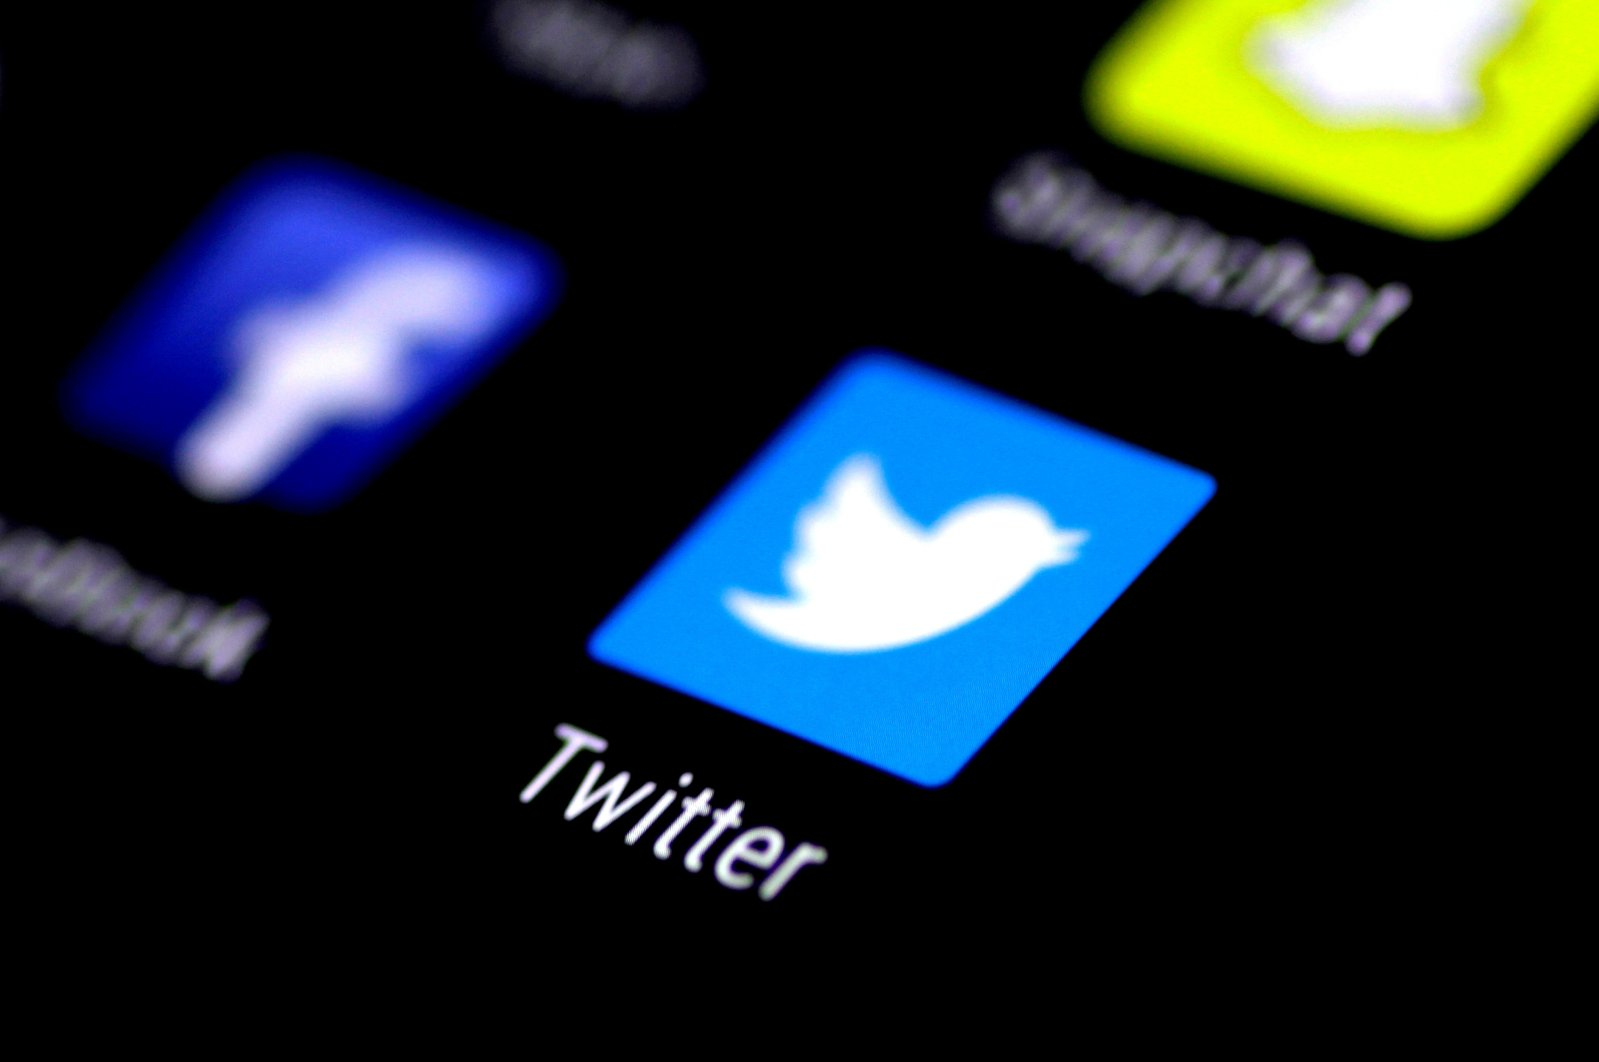 The Twitter application is seen on a phone screen Aug. 3, 2017. (Reuters Photo)